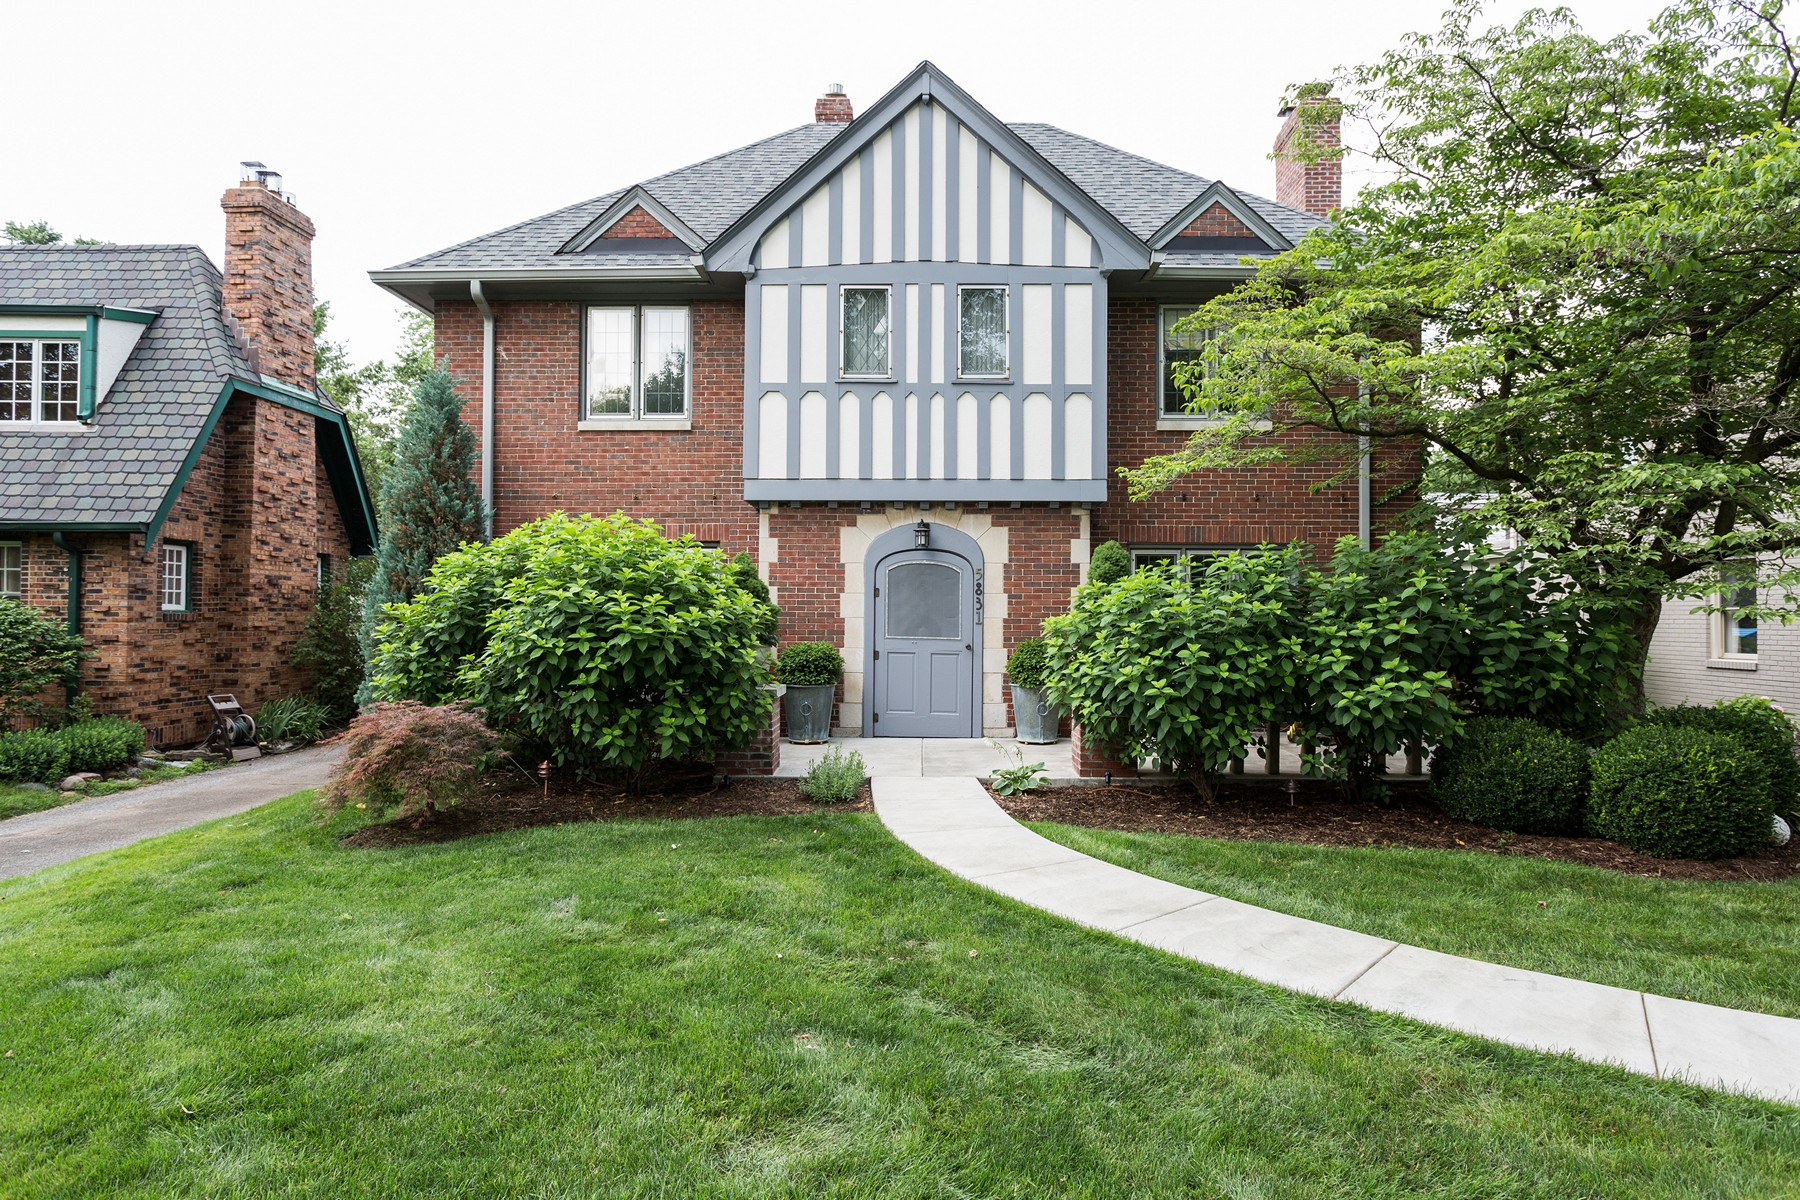 Single Family Home for Sale at Quintessential Meridian Kessler Residence 5831 Washington Boulevard Indianapolis, Indiana 46220 United States